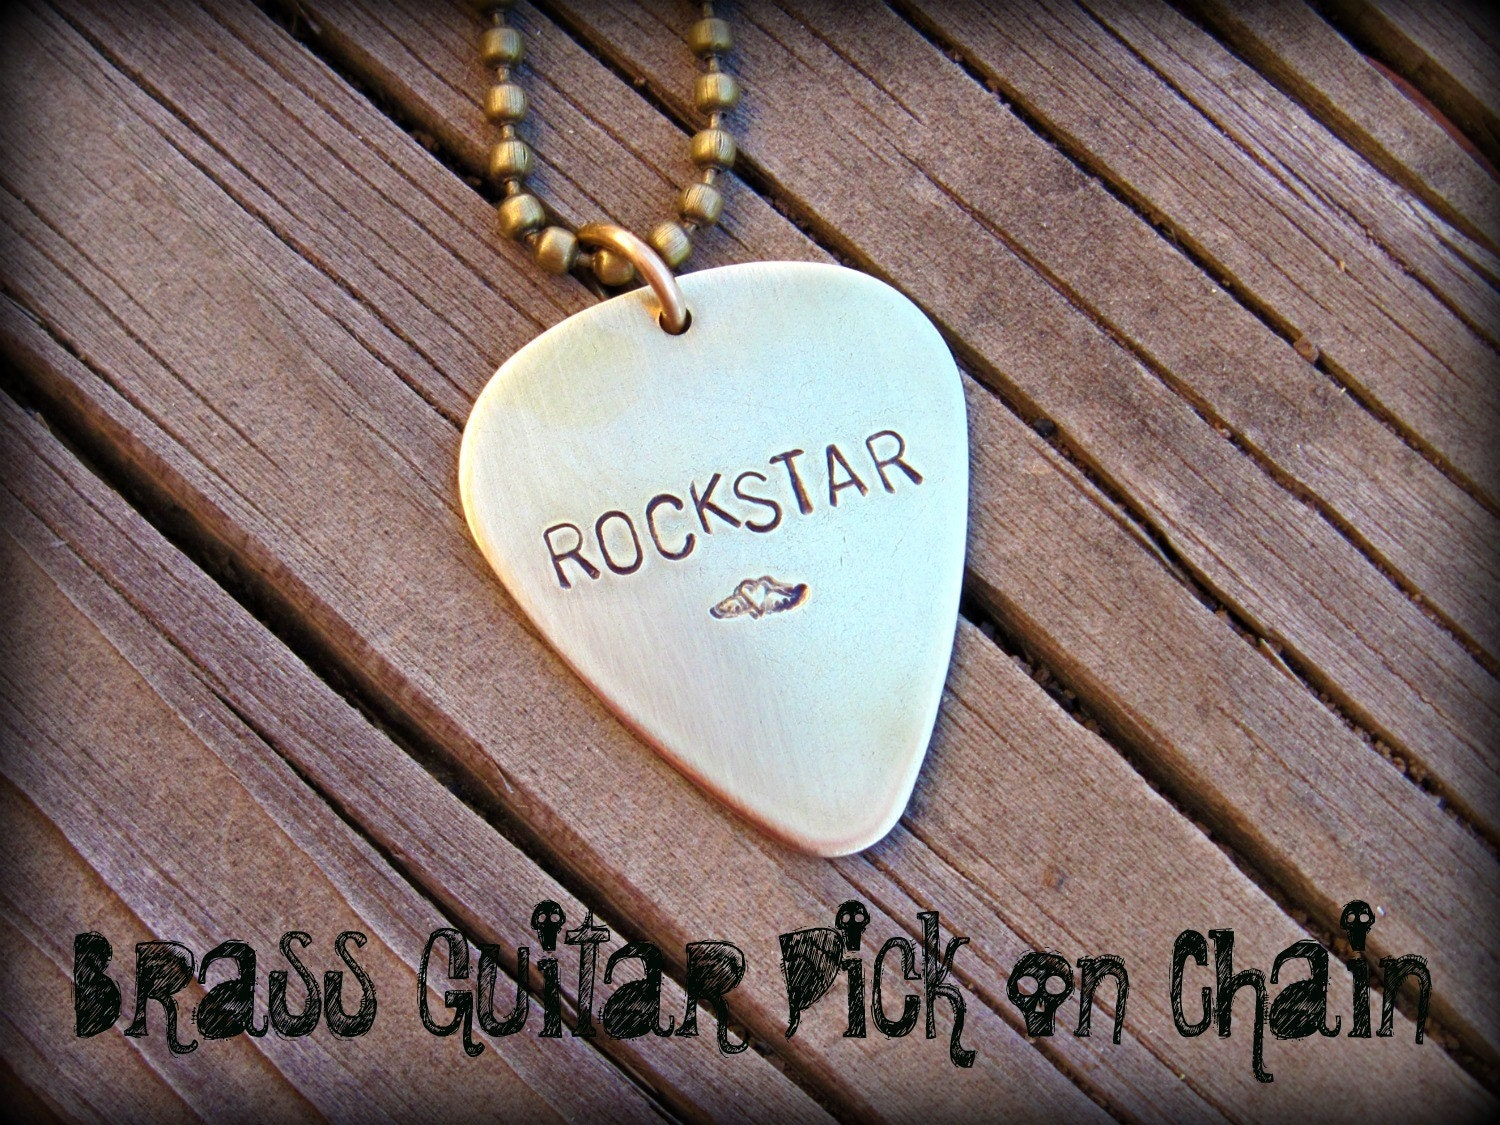 The Isaac - Nickel Silver, Brass or Copper Rocker Guitar Pick (qty 1) - Customize